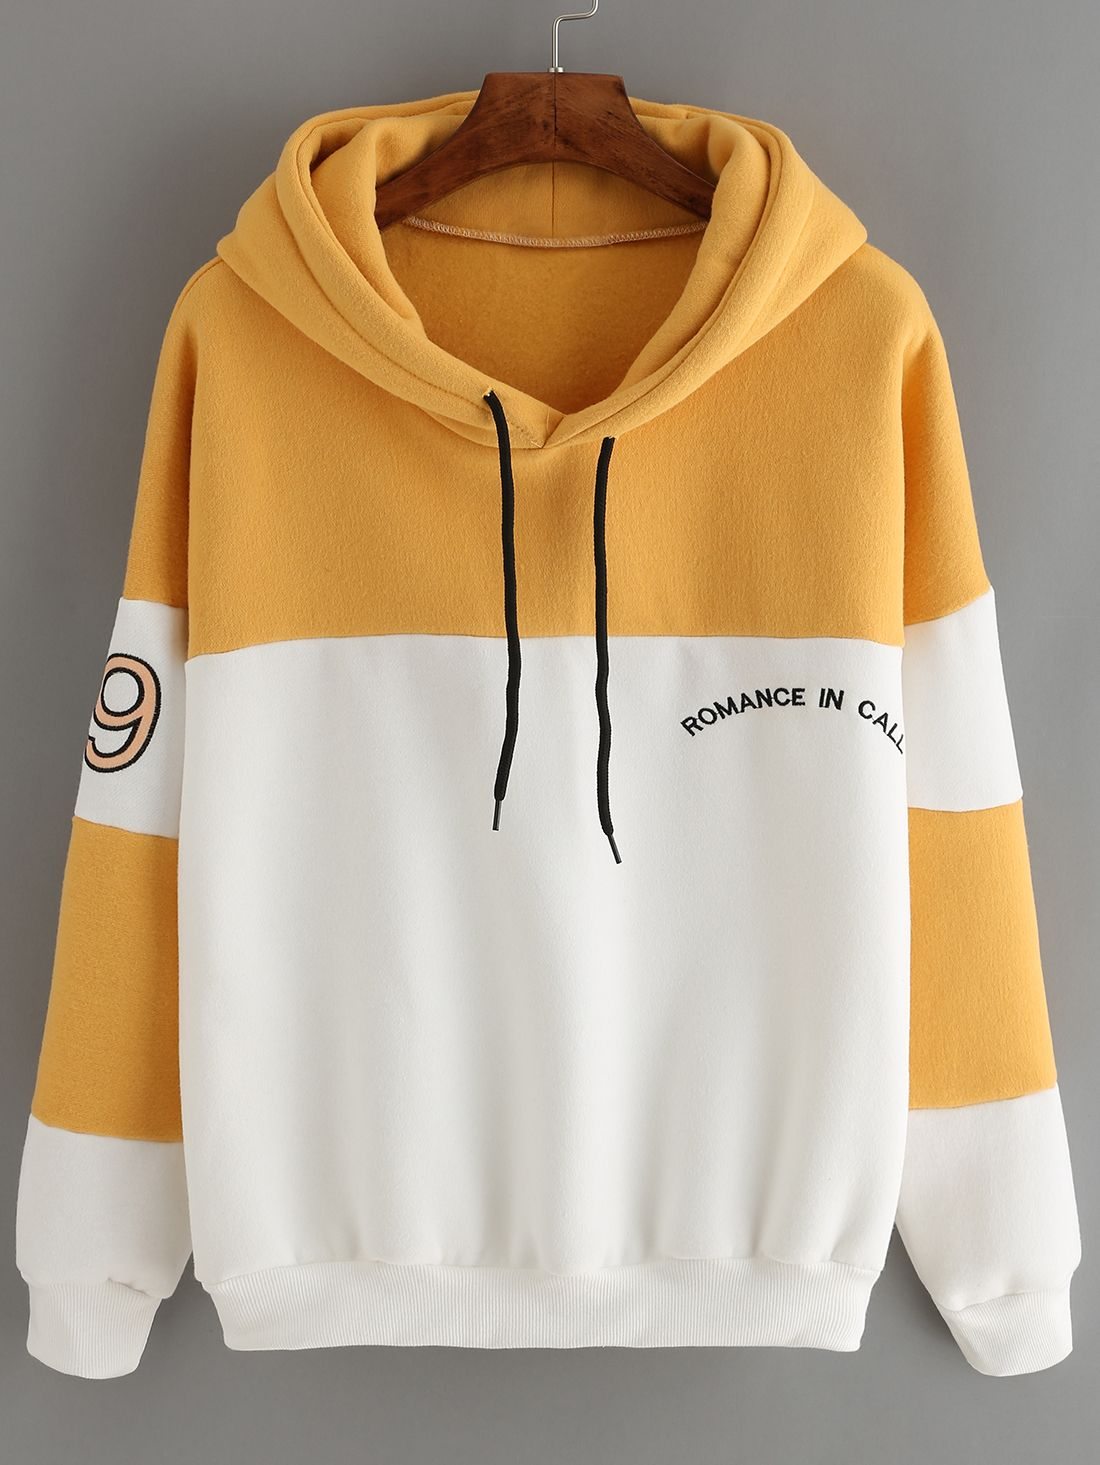 ColorBlock Letter Embroidered Sweatshirt With Drawstring